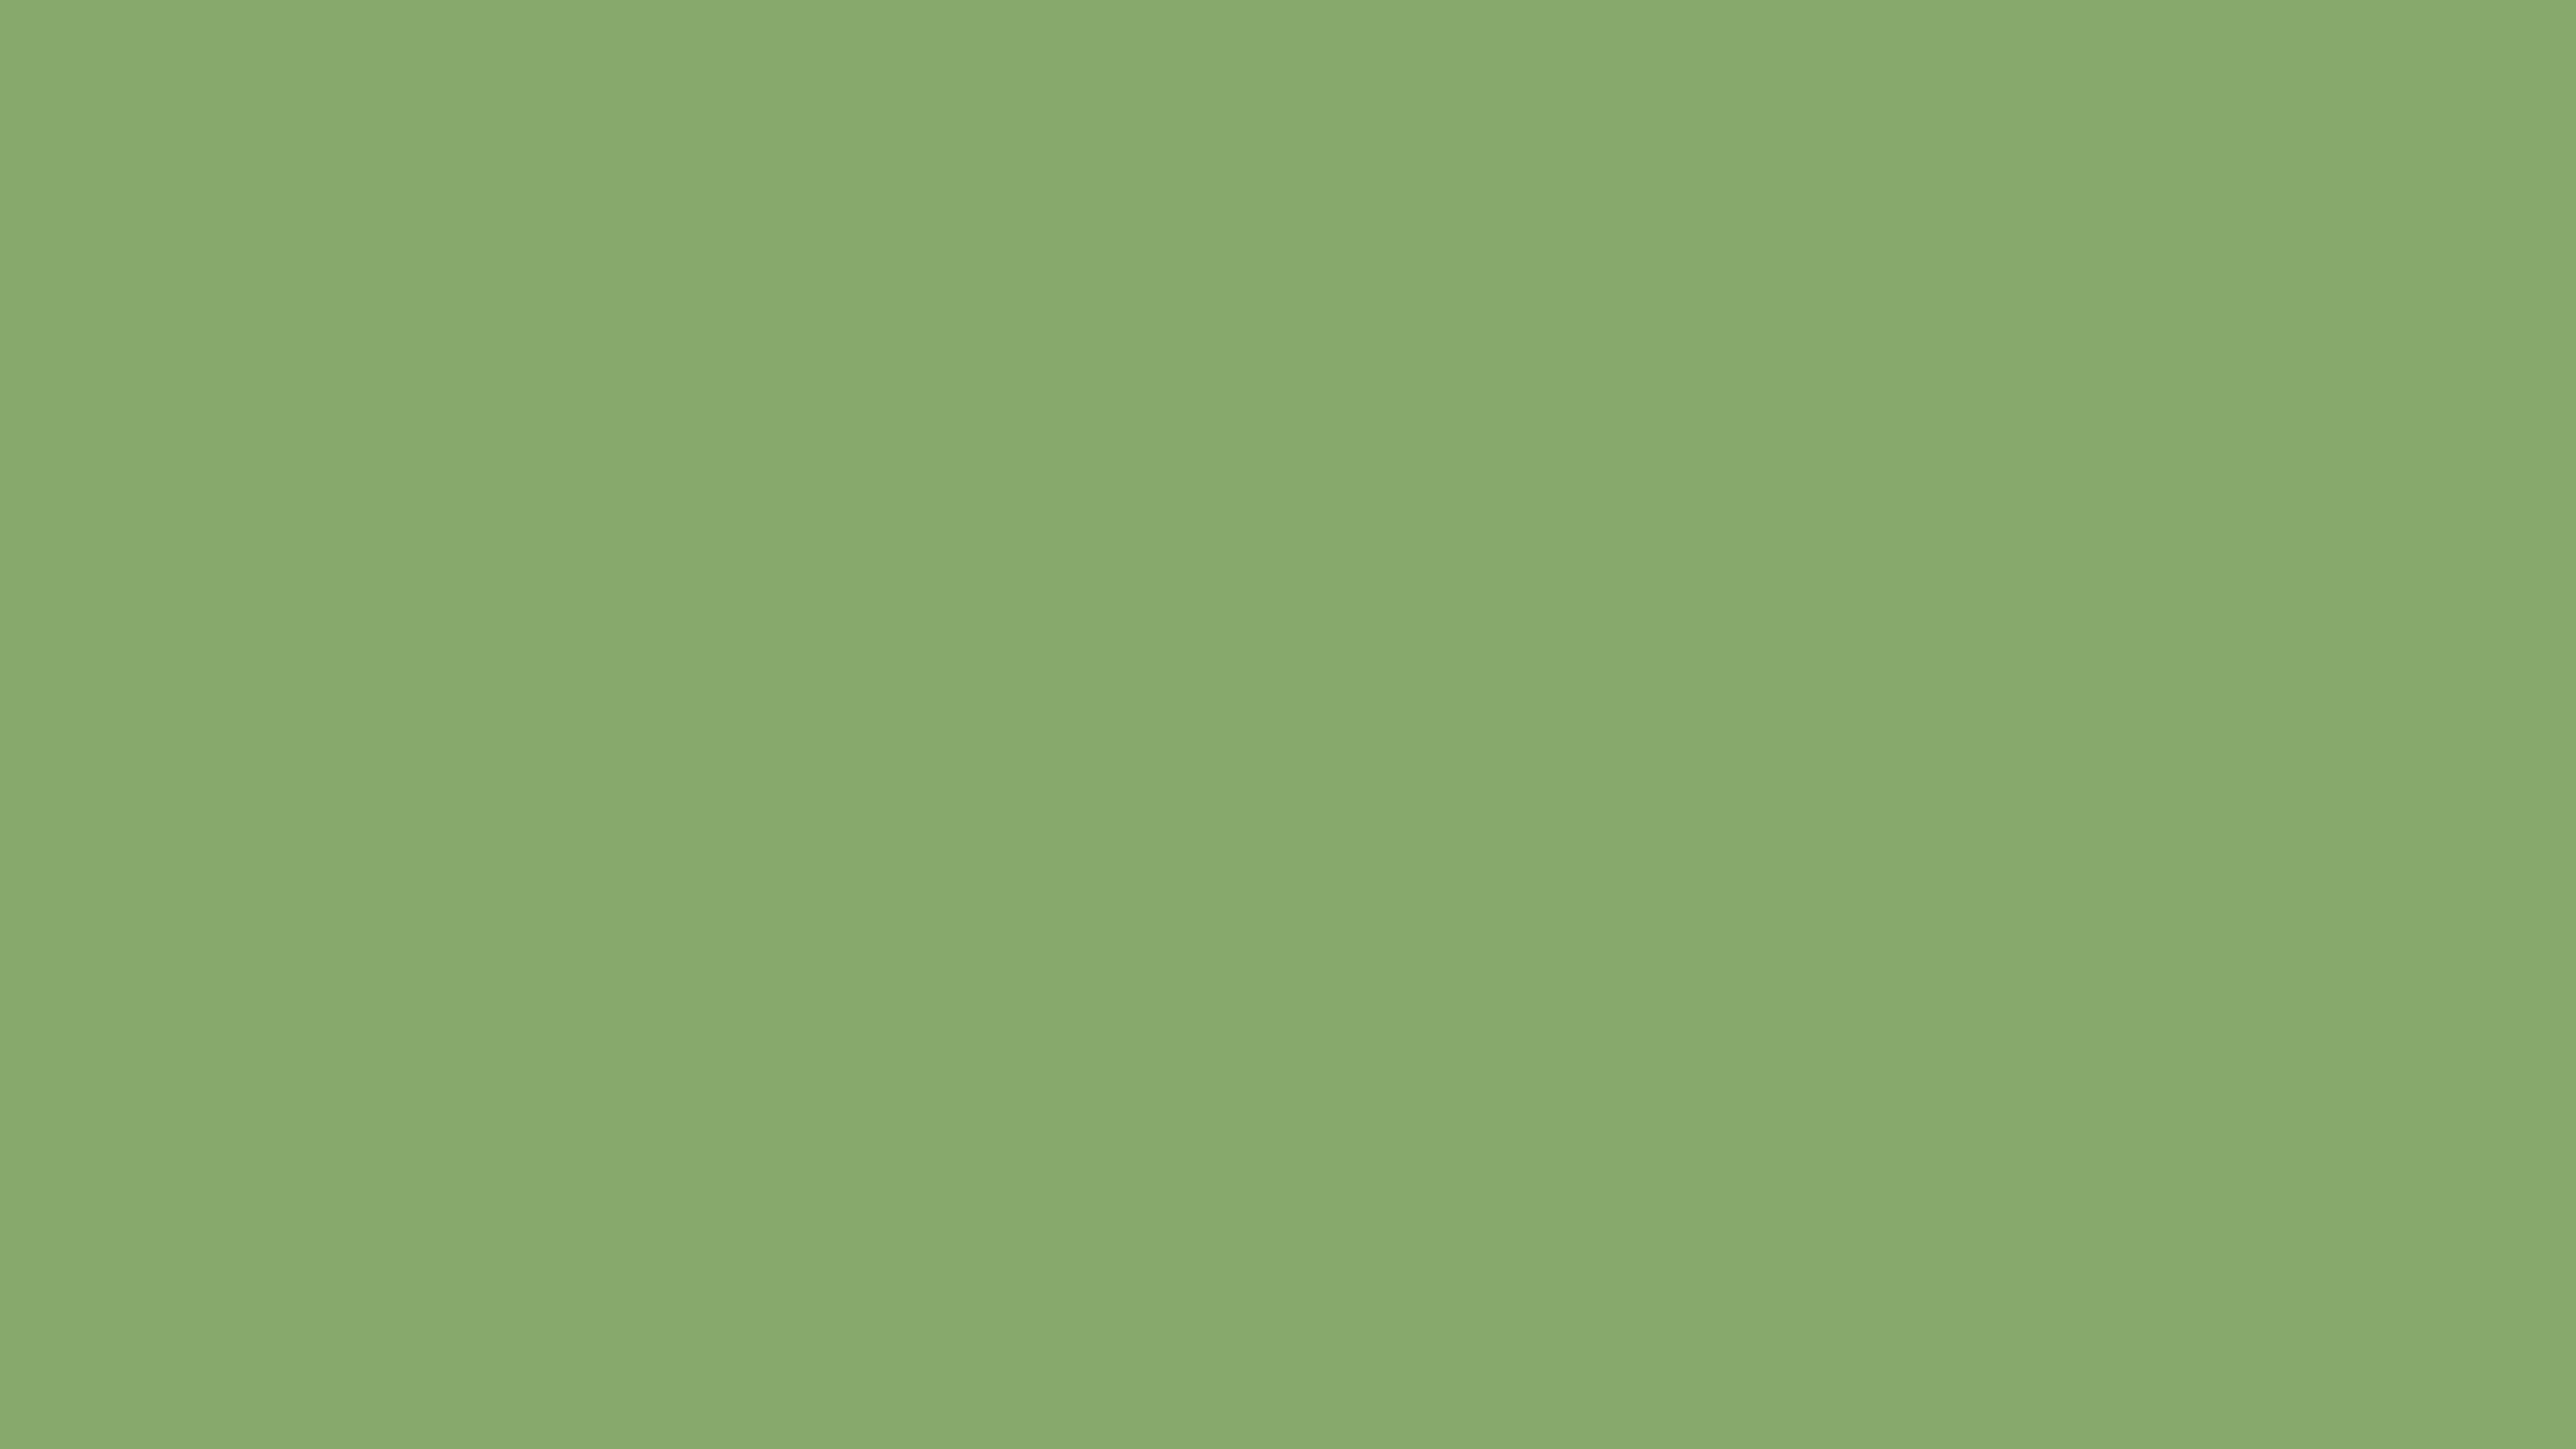 4096x2304 Asparagus Solid Color Background